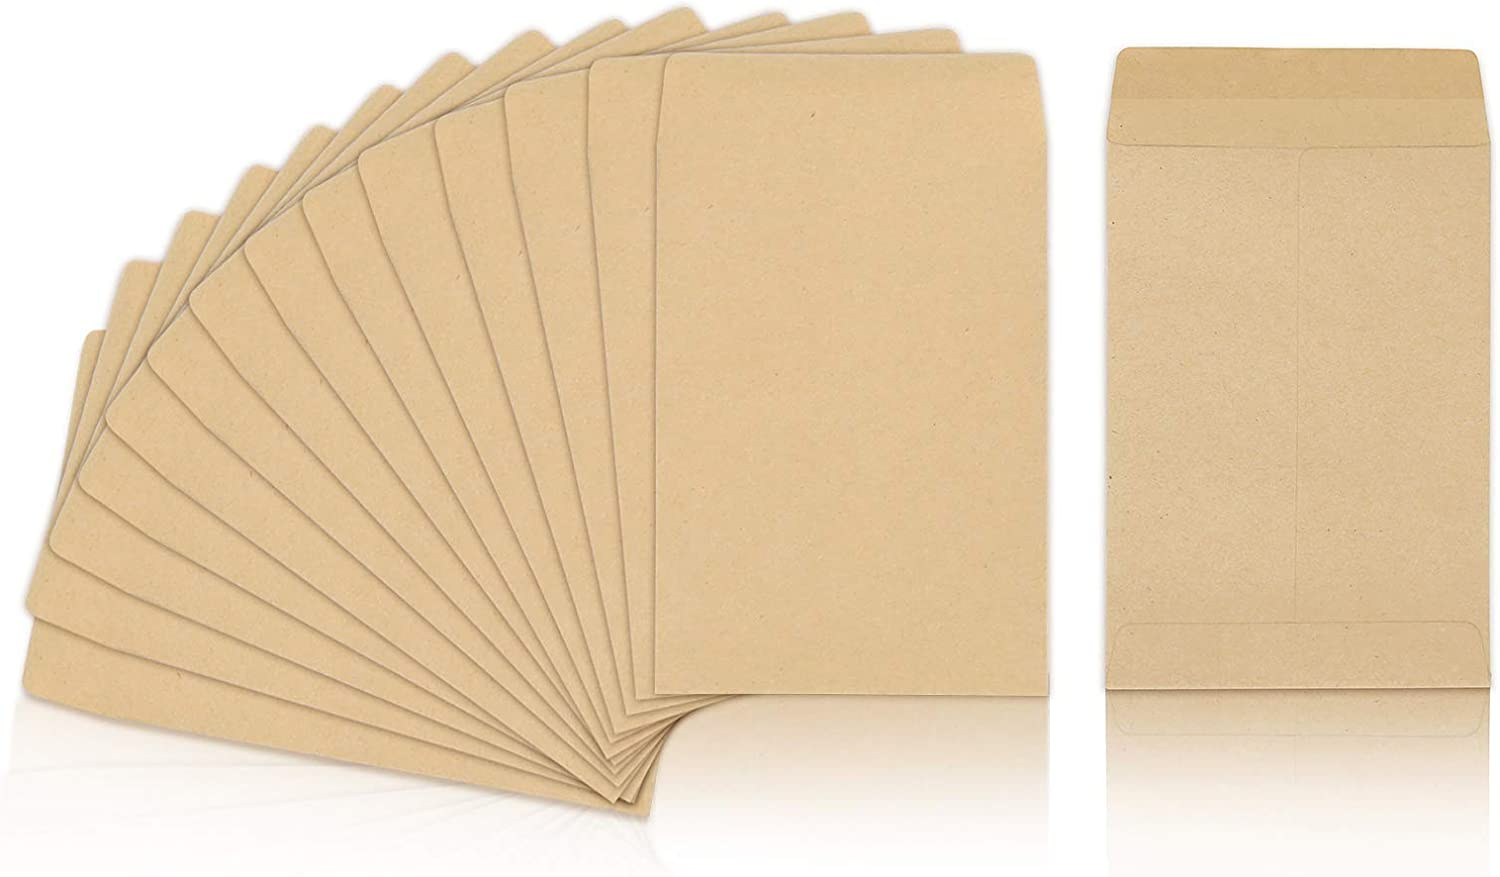 100 Packs Coin Seed Envelopes Kraft Small Parts Packets Envelopes Self Sealing Stamps Storage for Home, Office, Garden or Wedding Use (Kraft, 2.25×3.5 Inches)